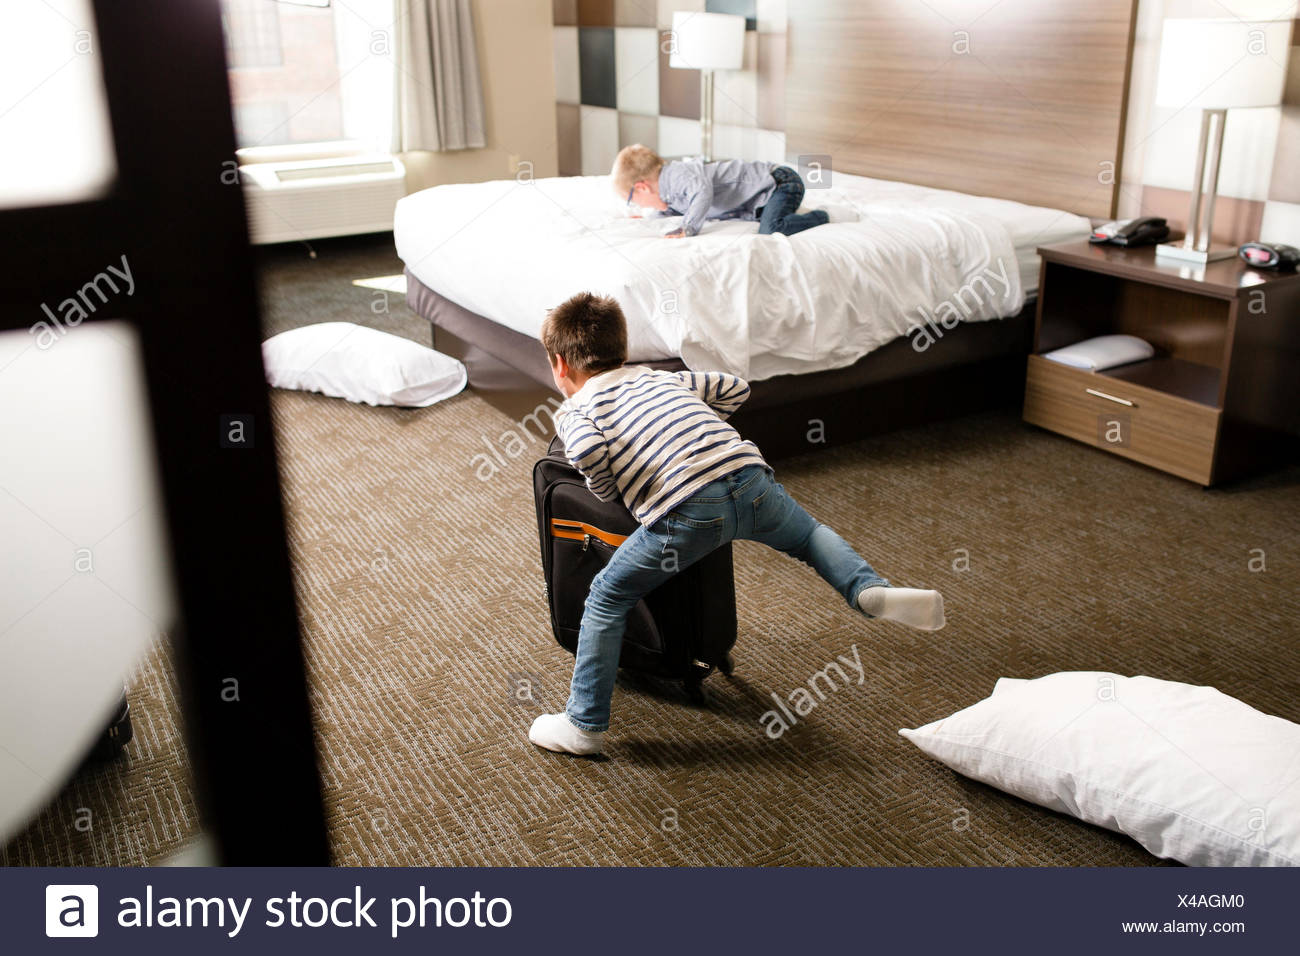 Two boys play in a motel room Stock Photo: 278057136 - Alamy